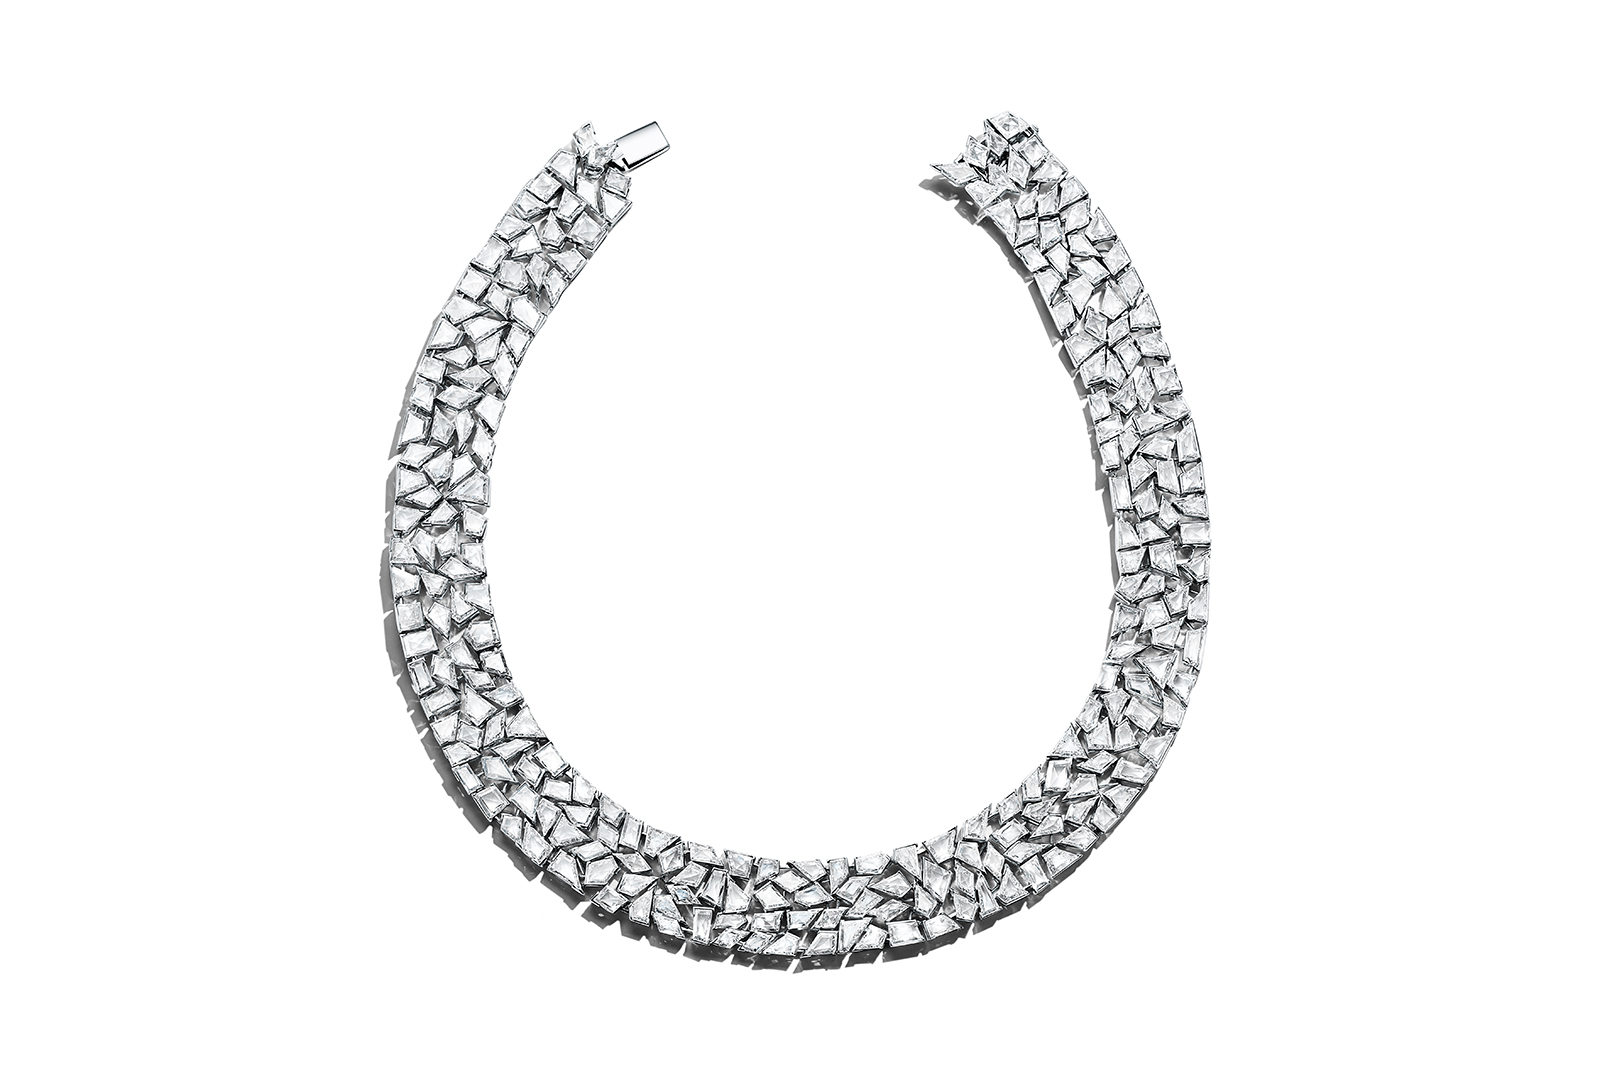 Tiffany & Co. Blue Book 2018 collection necklace in platinum with uniquely cut diamonds, over 92 total carats